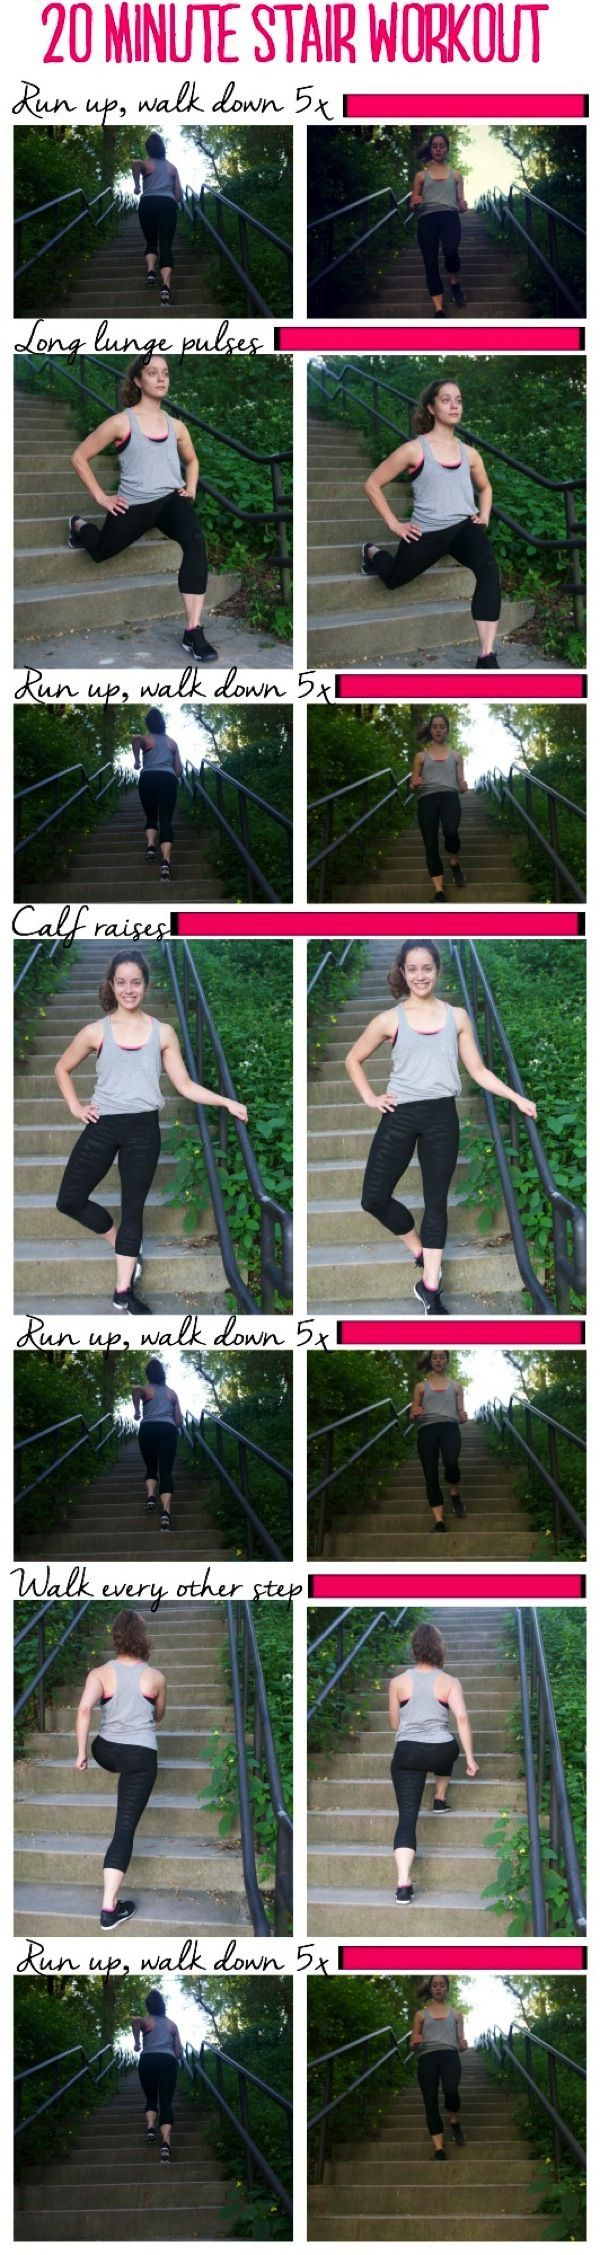 20 Minute Stair Workout   Take your workout outdoors with this quick stair workout